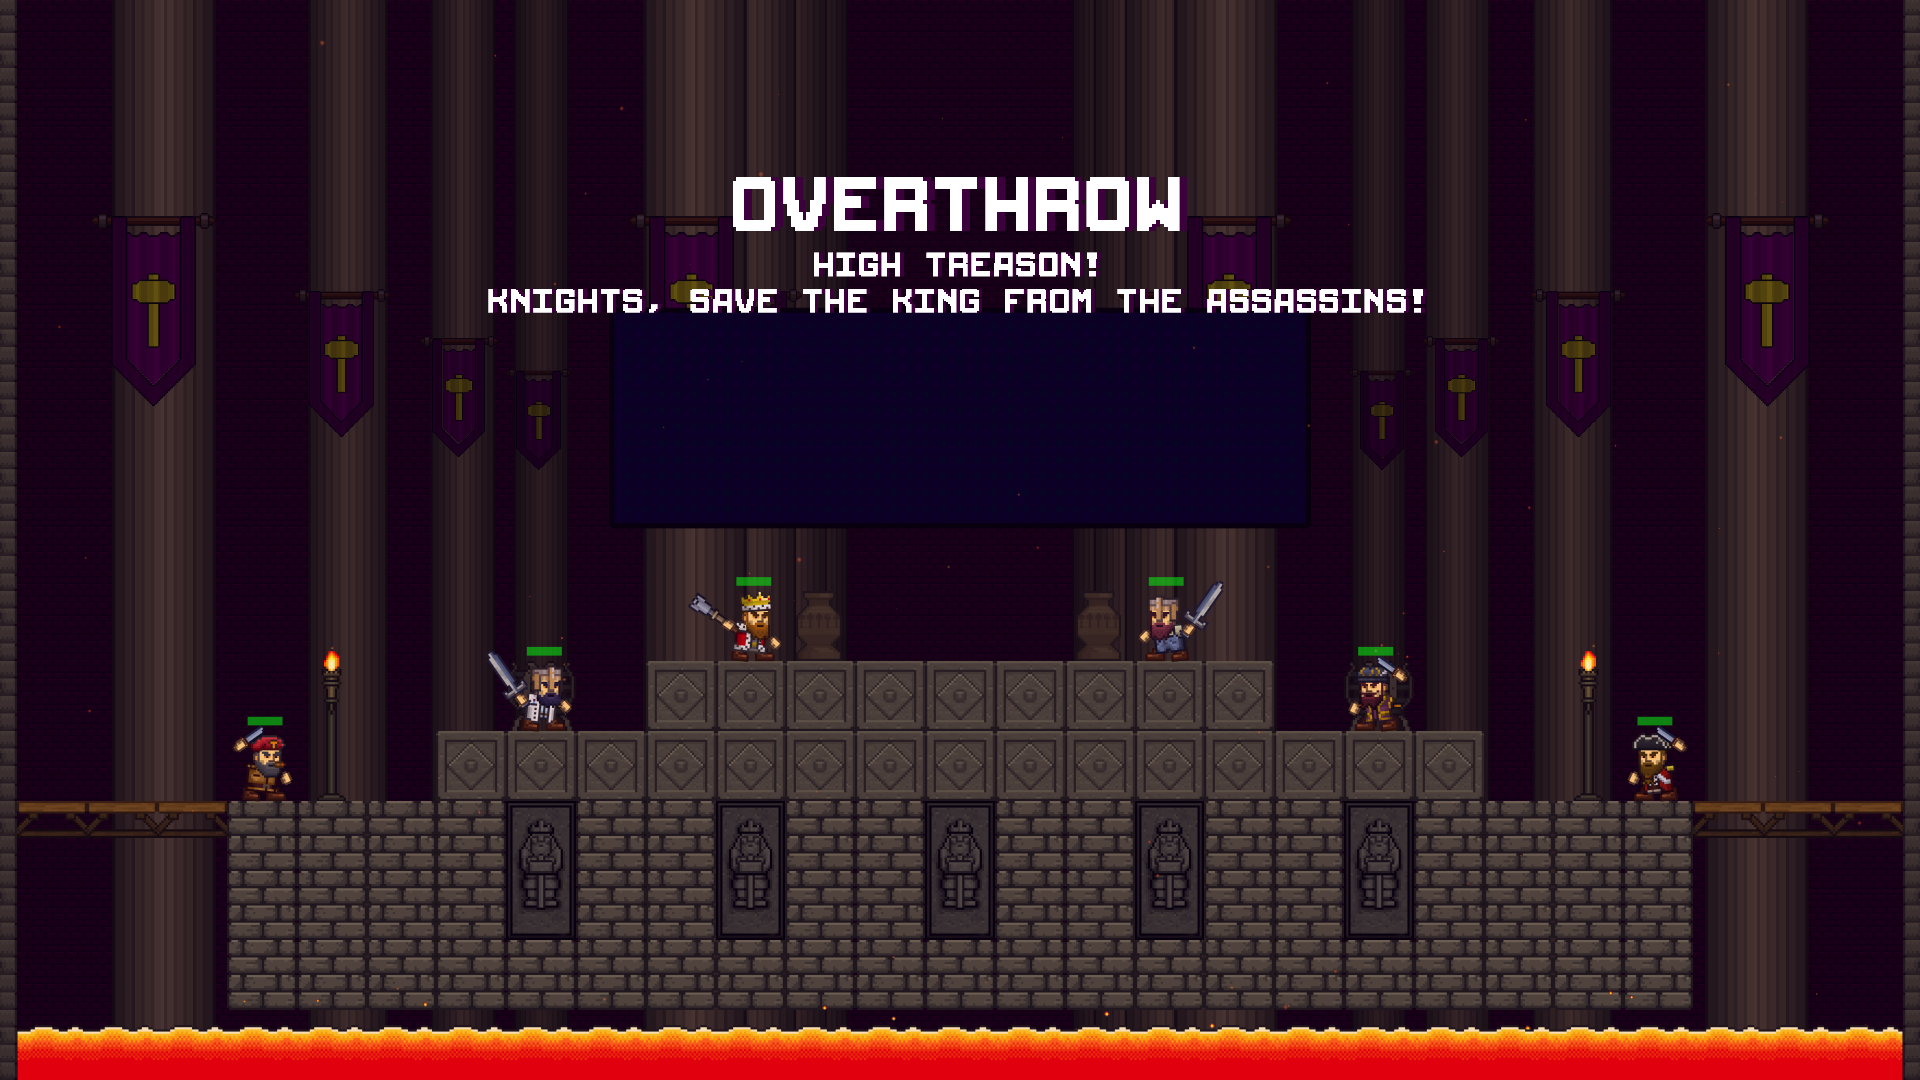 Overthrow game mode for 6 players